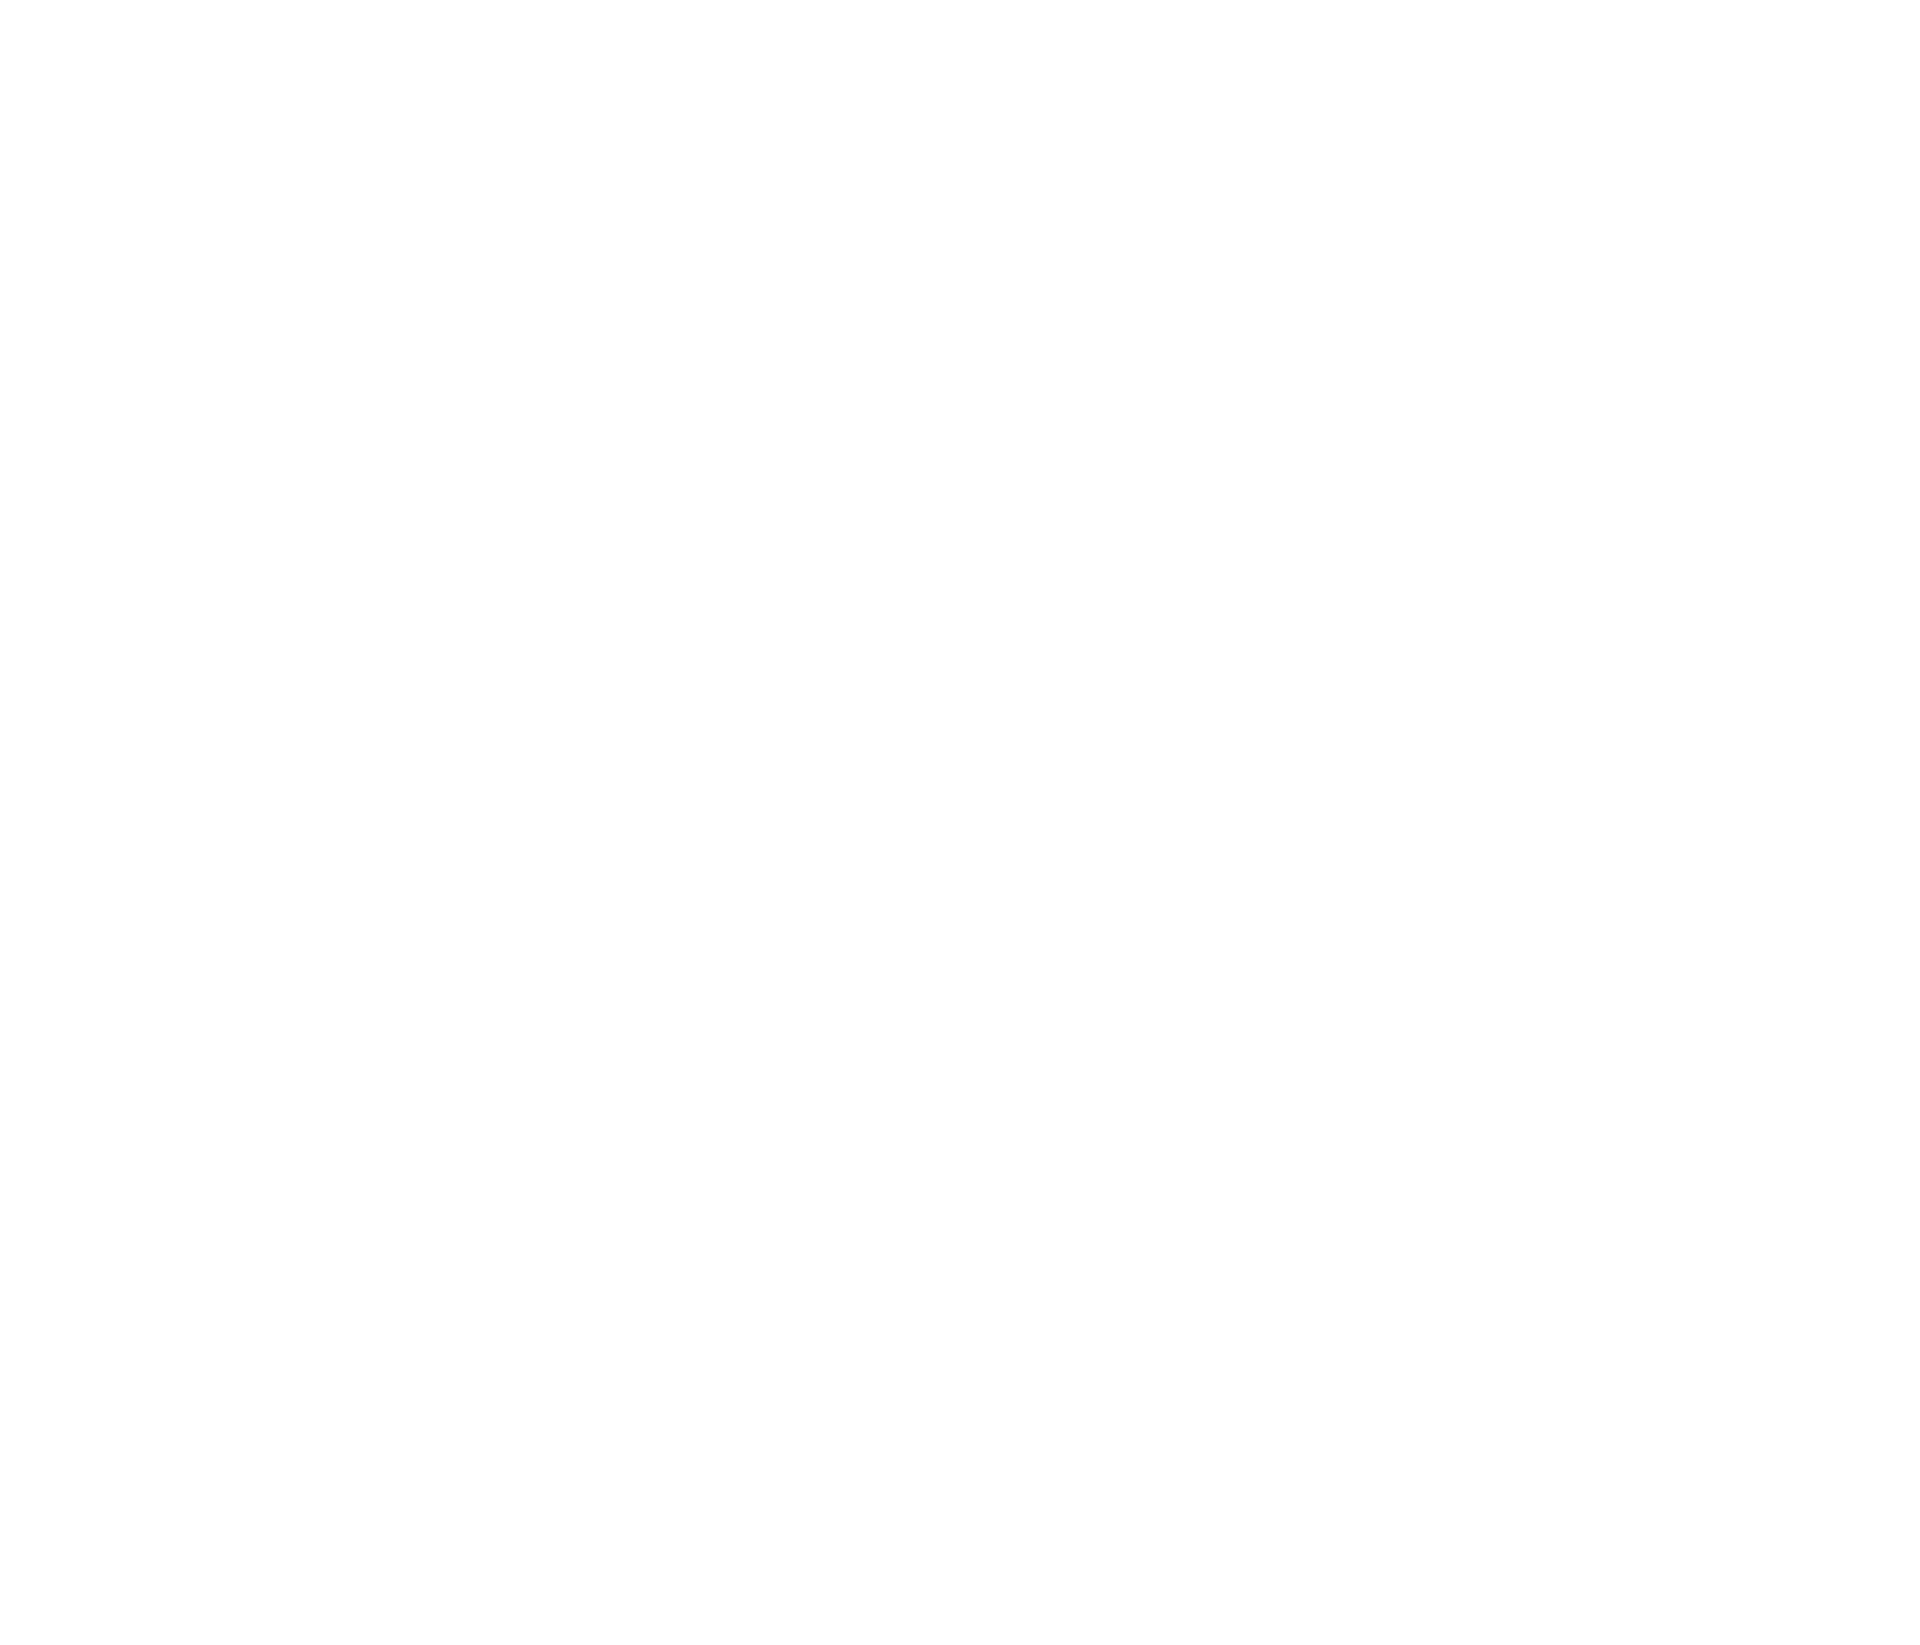 Green and Trendy